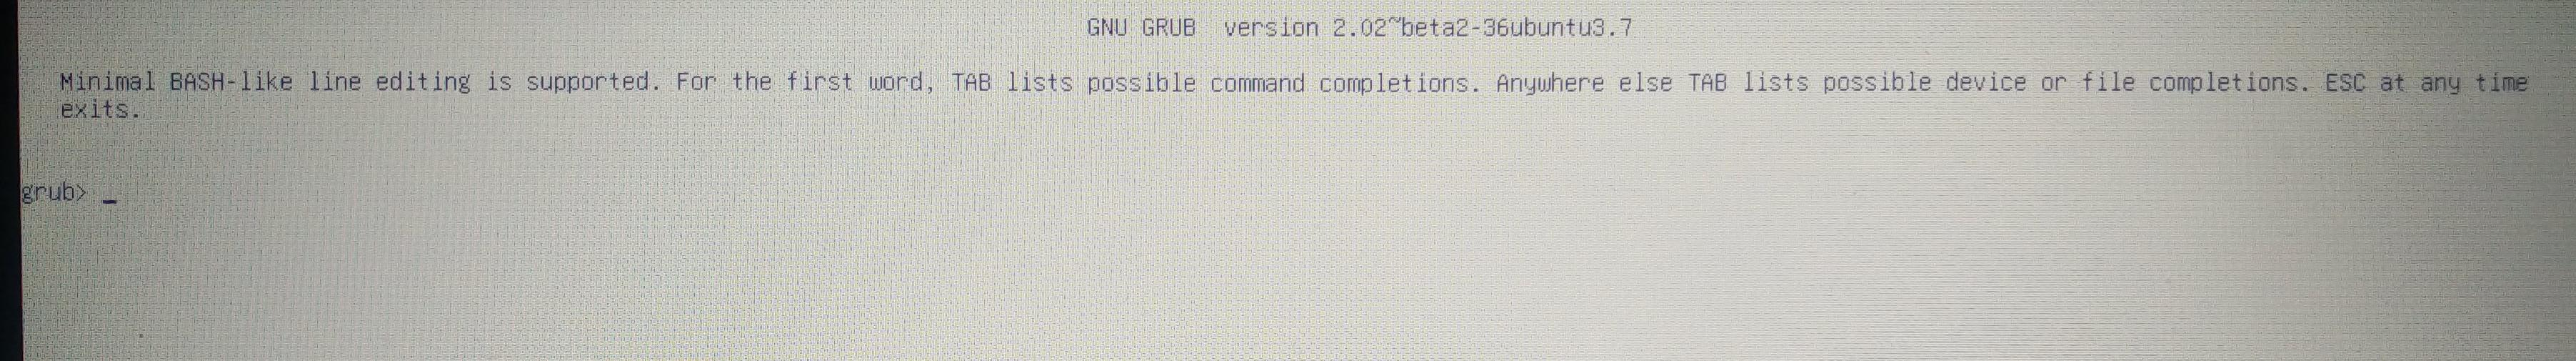 Manually UEFI Boot Linux and Windows 10 USB from Grub